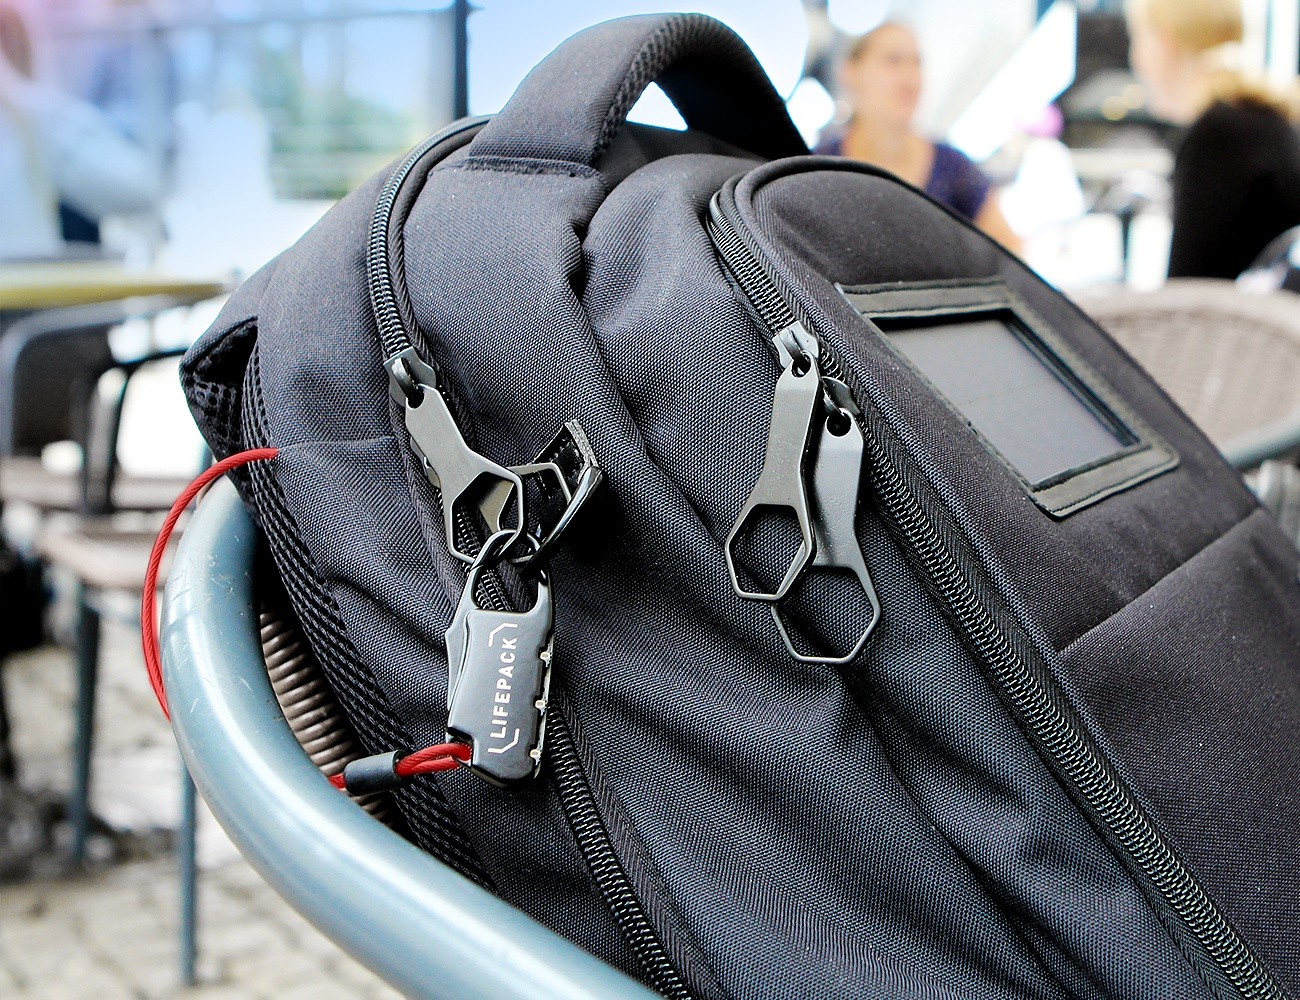 Lifepack – Solar Powered & Anti-Theft Backpack